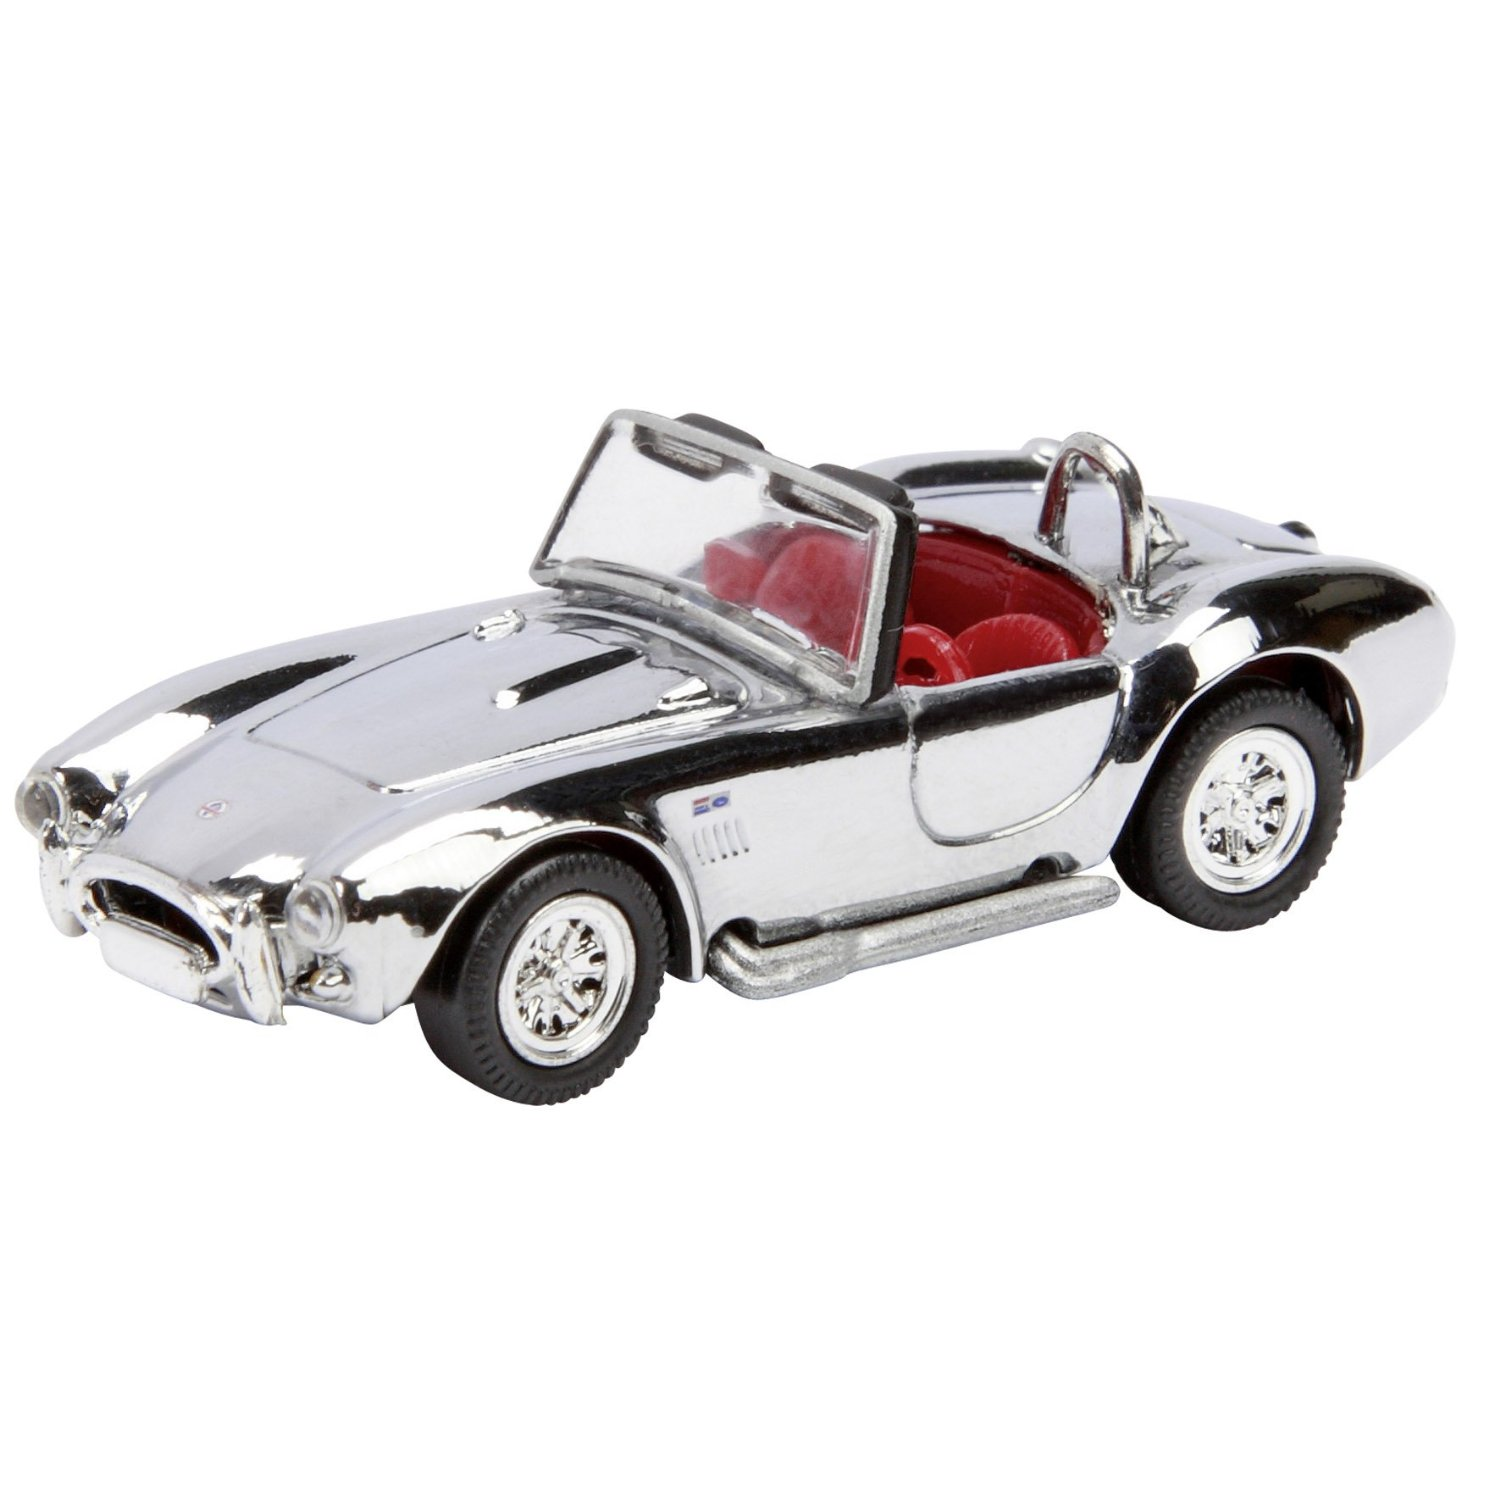 "25859 Schuco HO 1:87 Shelby AC Cobra ""concept chrome"""